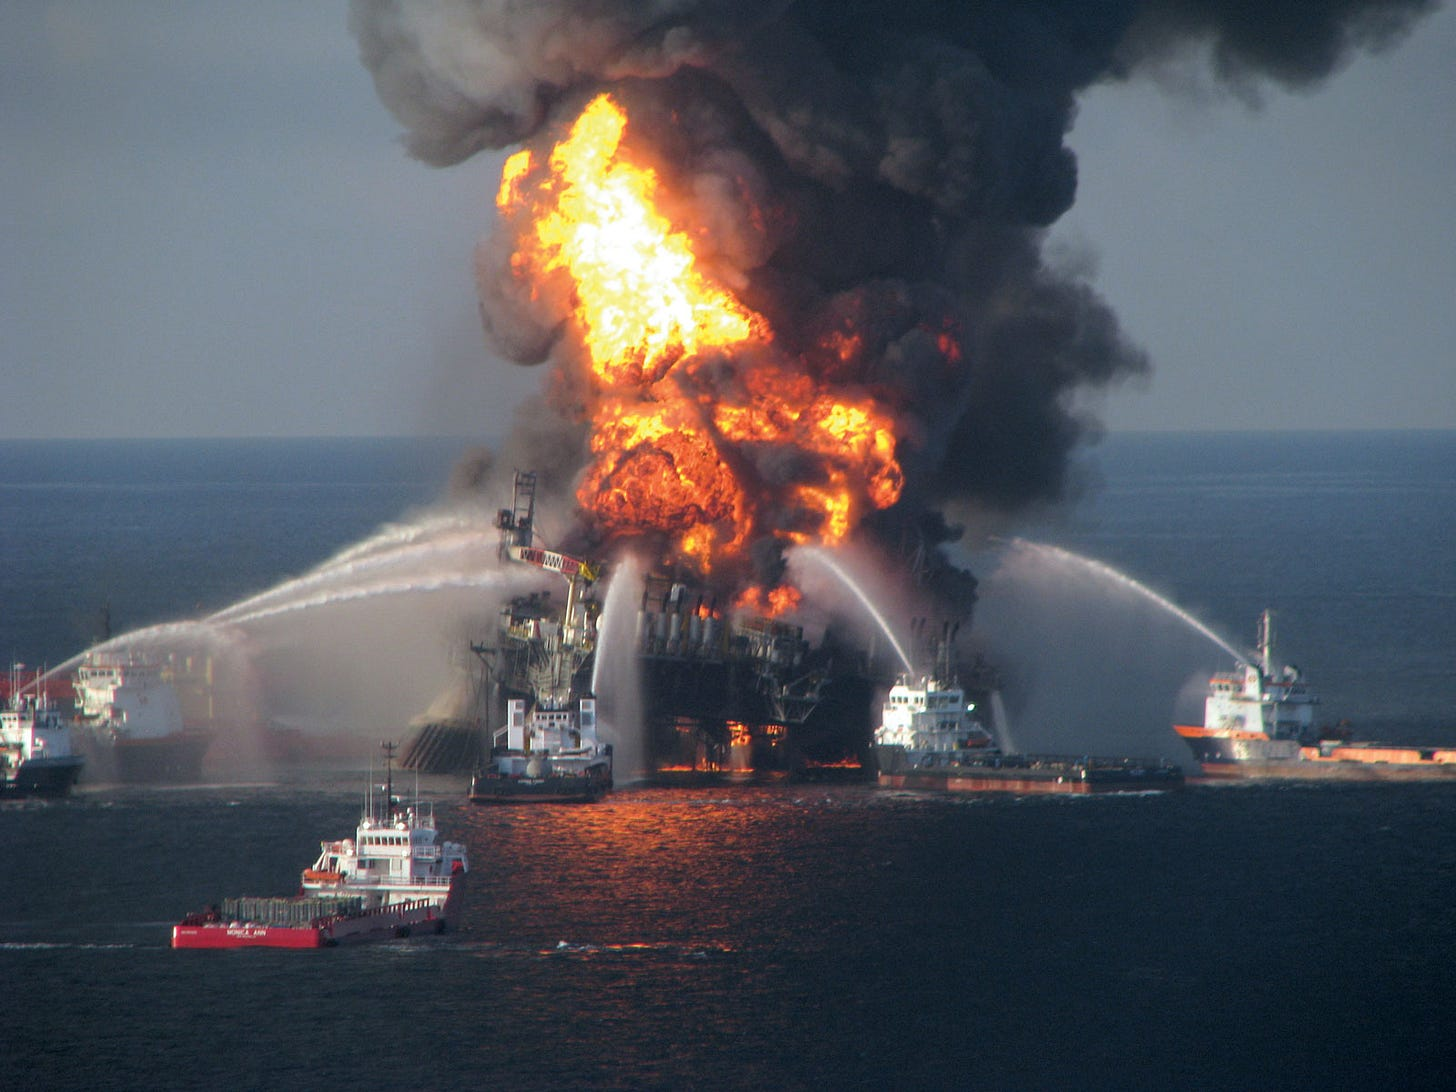 Deepwater Horizon oil spill   Summary, Effects, Cause, Clean Up, & Facts    Britannica